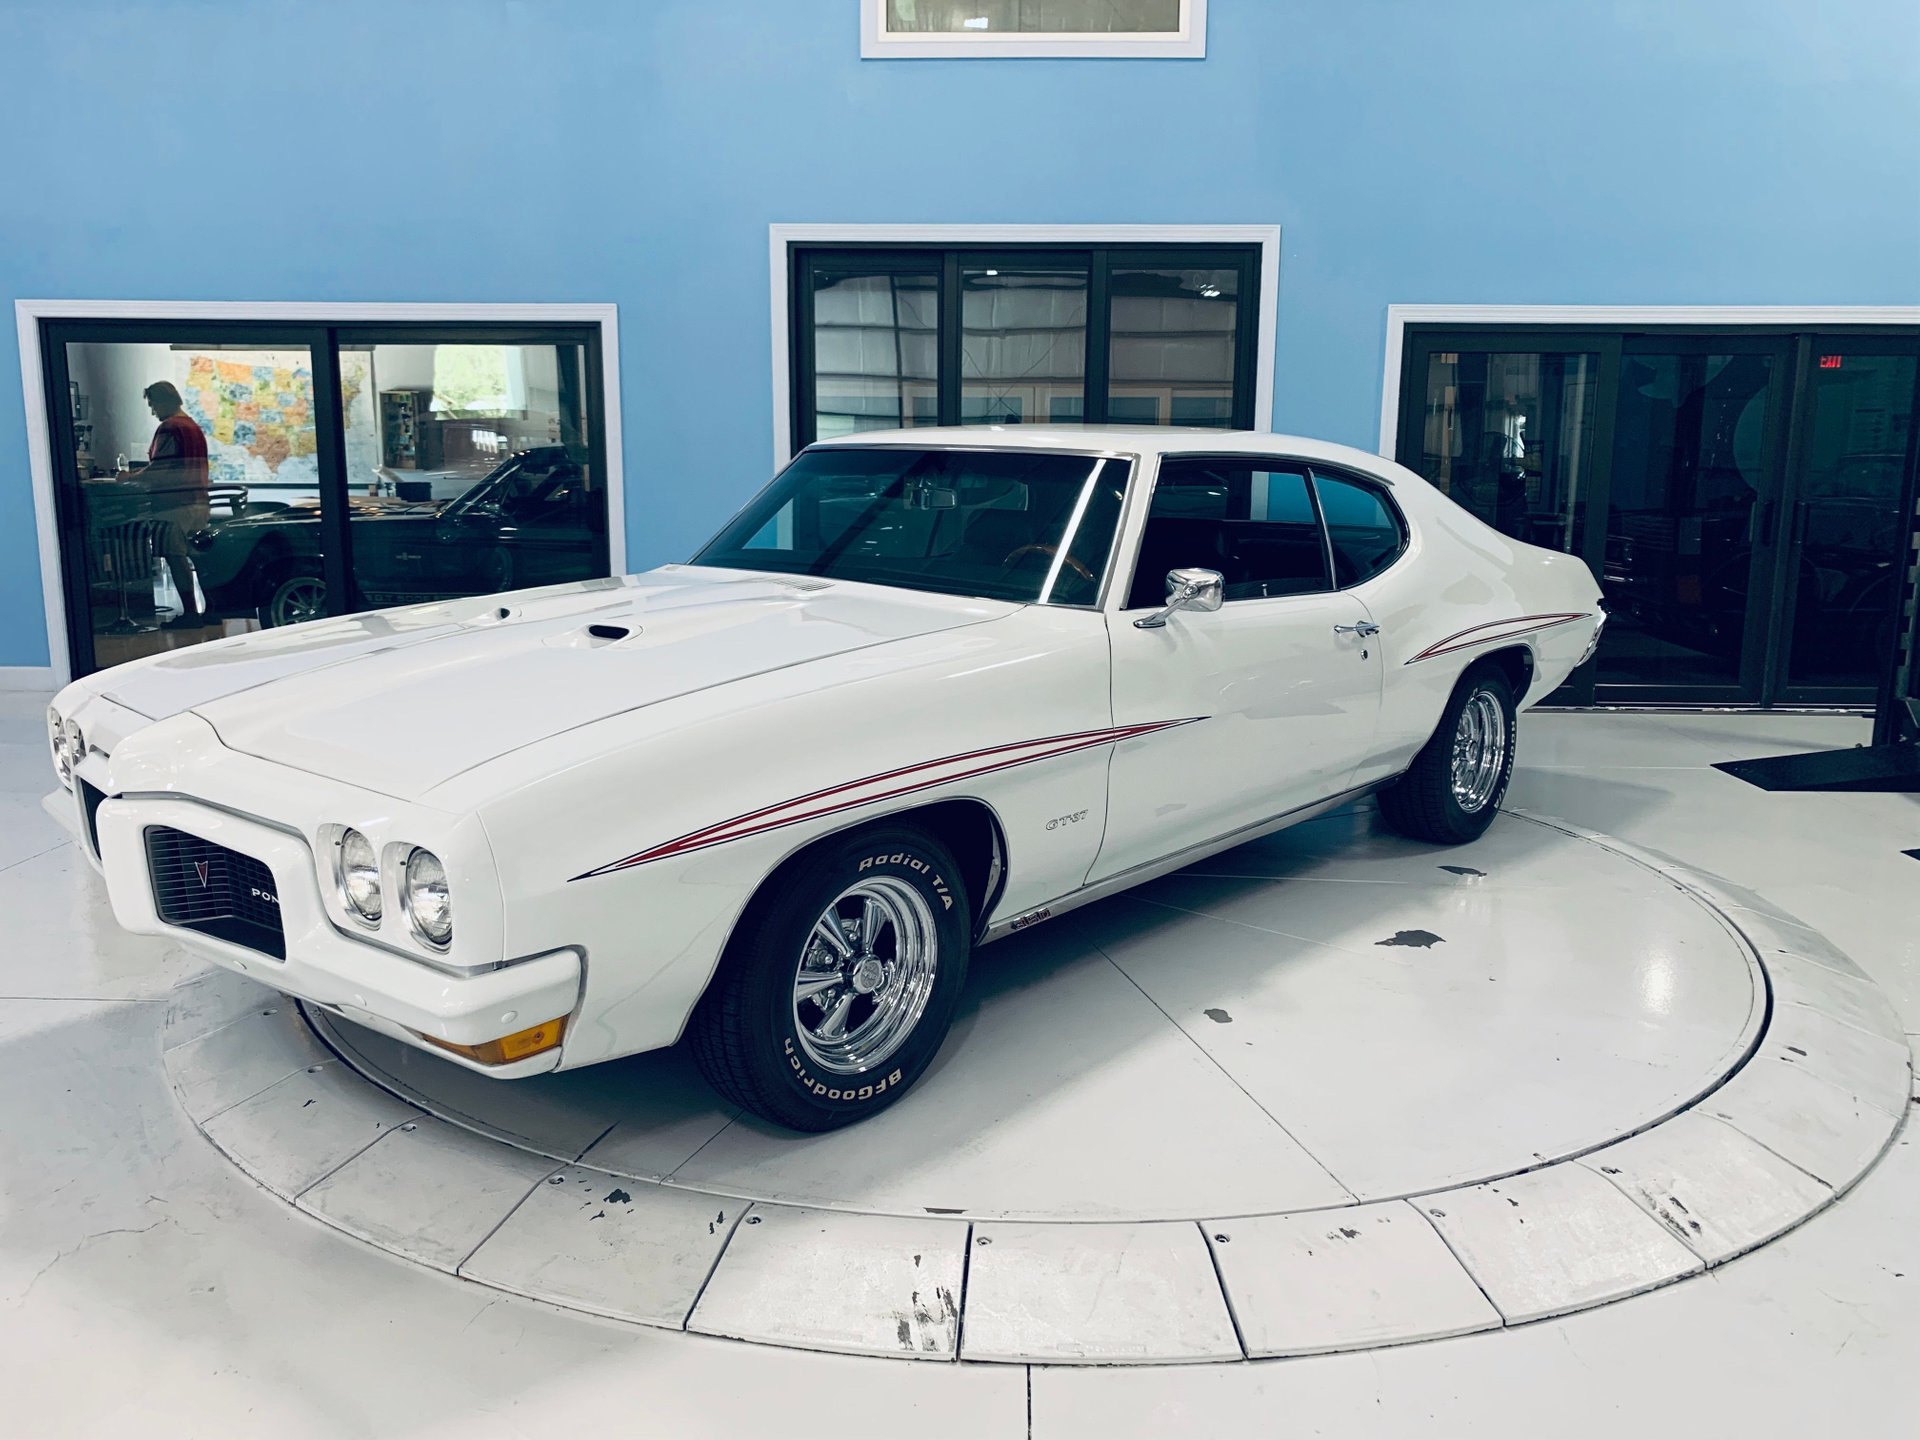 1970 Pontiac Lemans Sport Classic Cars Used Cars For Sale In Tampa Fl